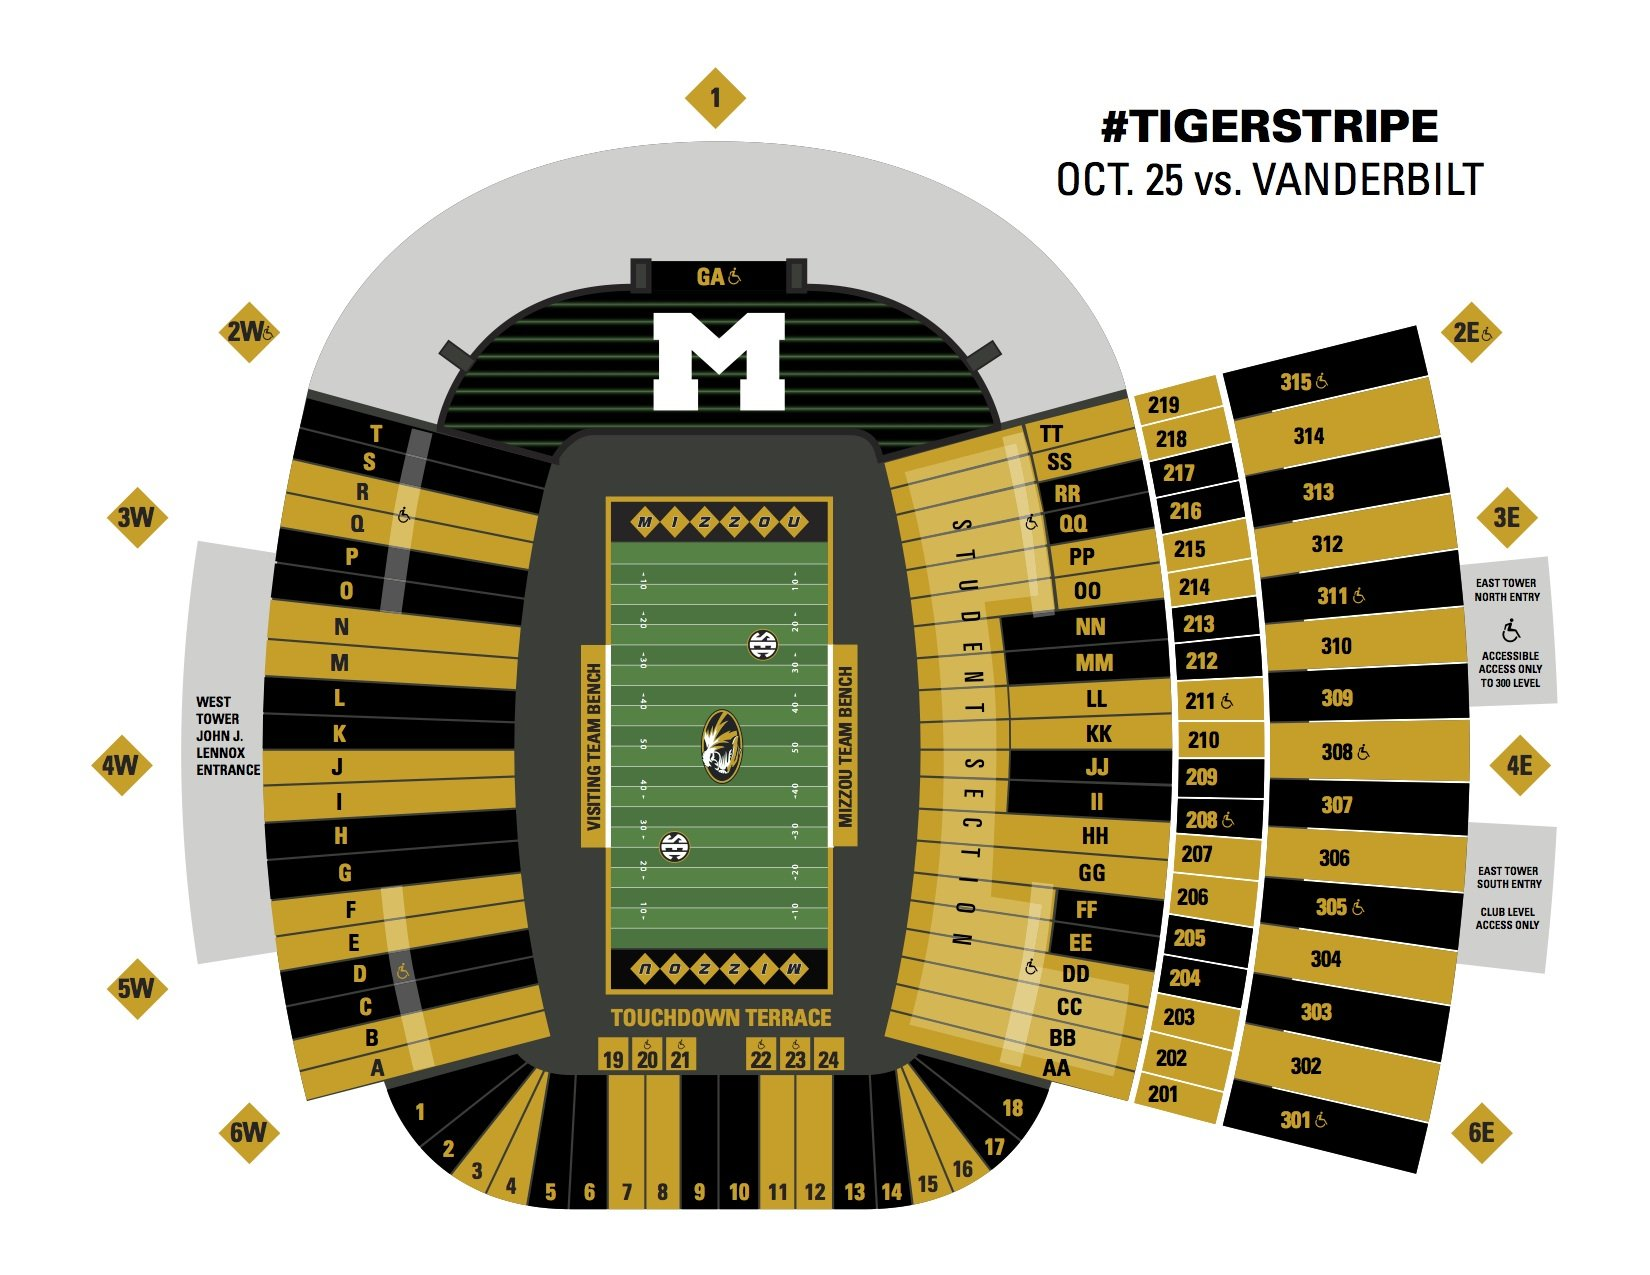 a map for saay with Mizzou Stadium Seating Chart Football on Vastindien as well Lakewood  hitheater Seating Chart furthermore Apollo Theatre Hammersmith Seating Plan also Eventim Apollo Theatre London Seating Plan in addition Merrill Auditorium Seating.